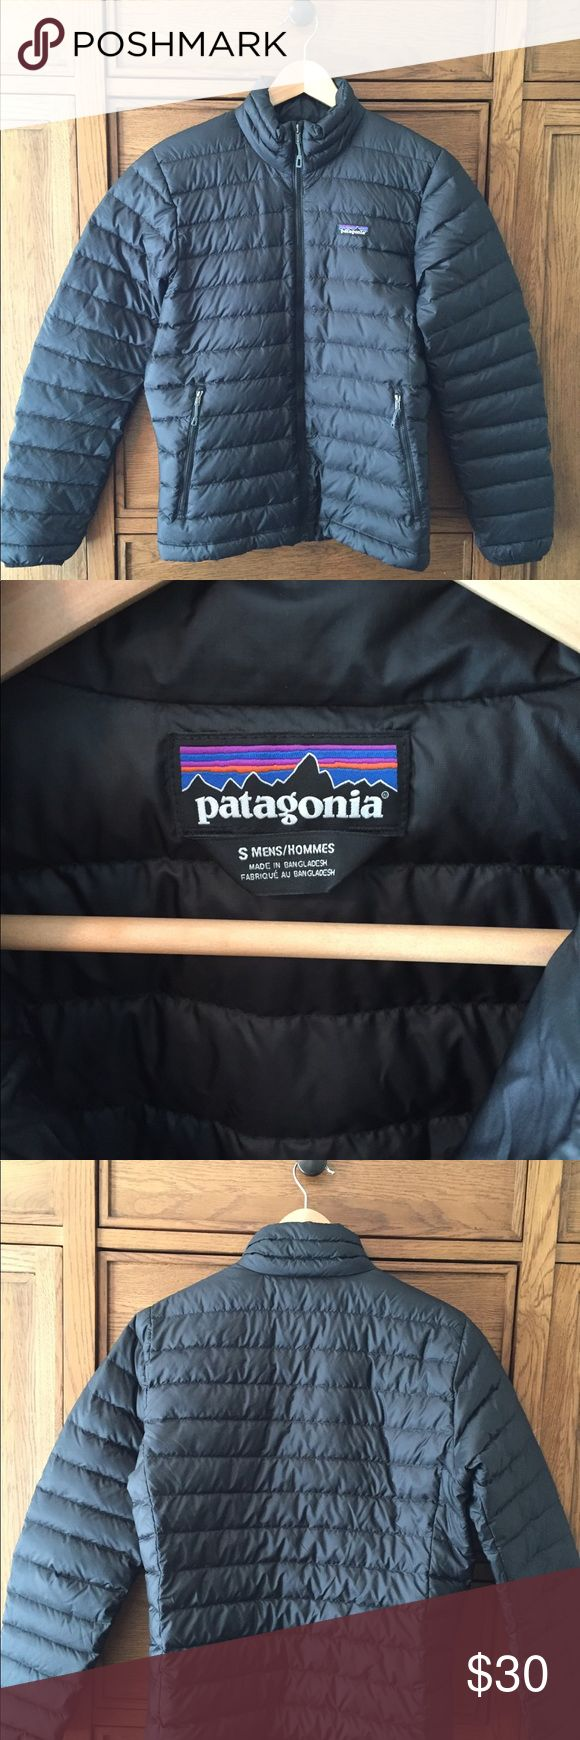 Men's Patagonia puffer jacket (With images) Jackets